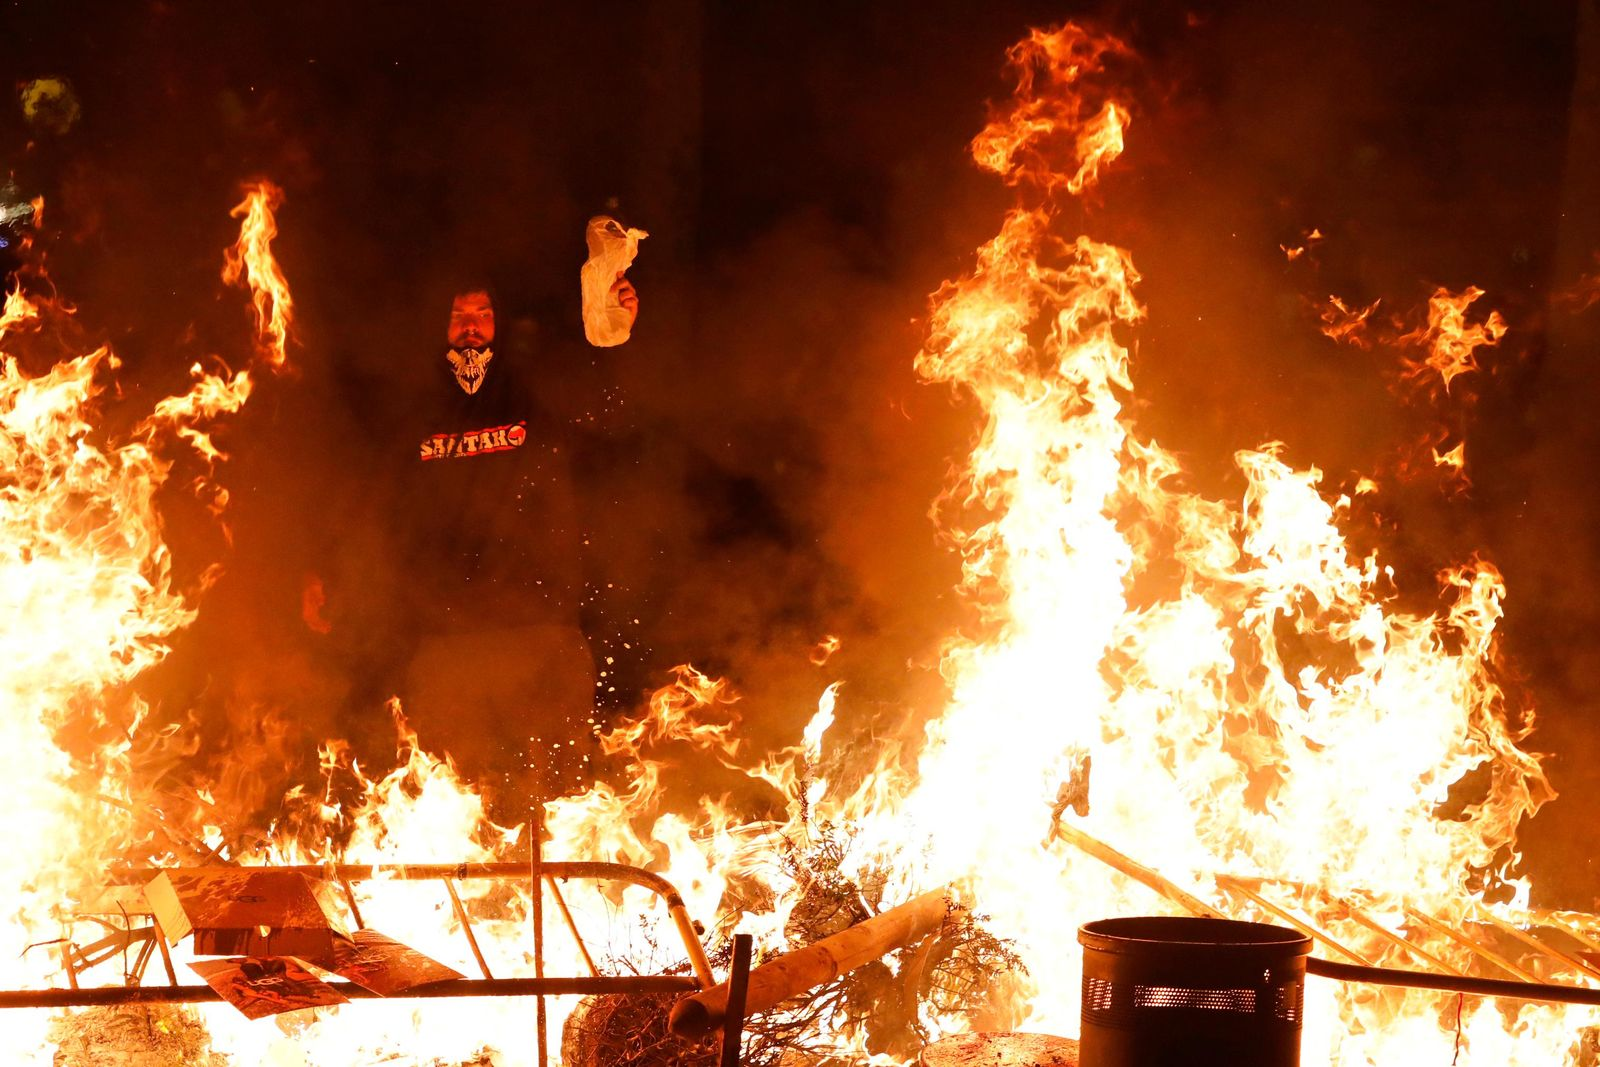 A protestors pours gasoline on a burning barricade during clashes with police in Barcelona, Spain, Thursday, Oct. 17, 2019.{ } (AP Photo/Emilio Morenatti)